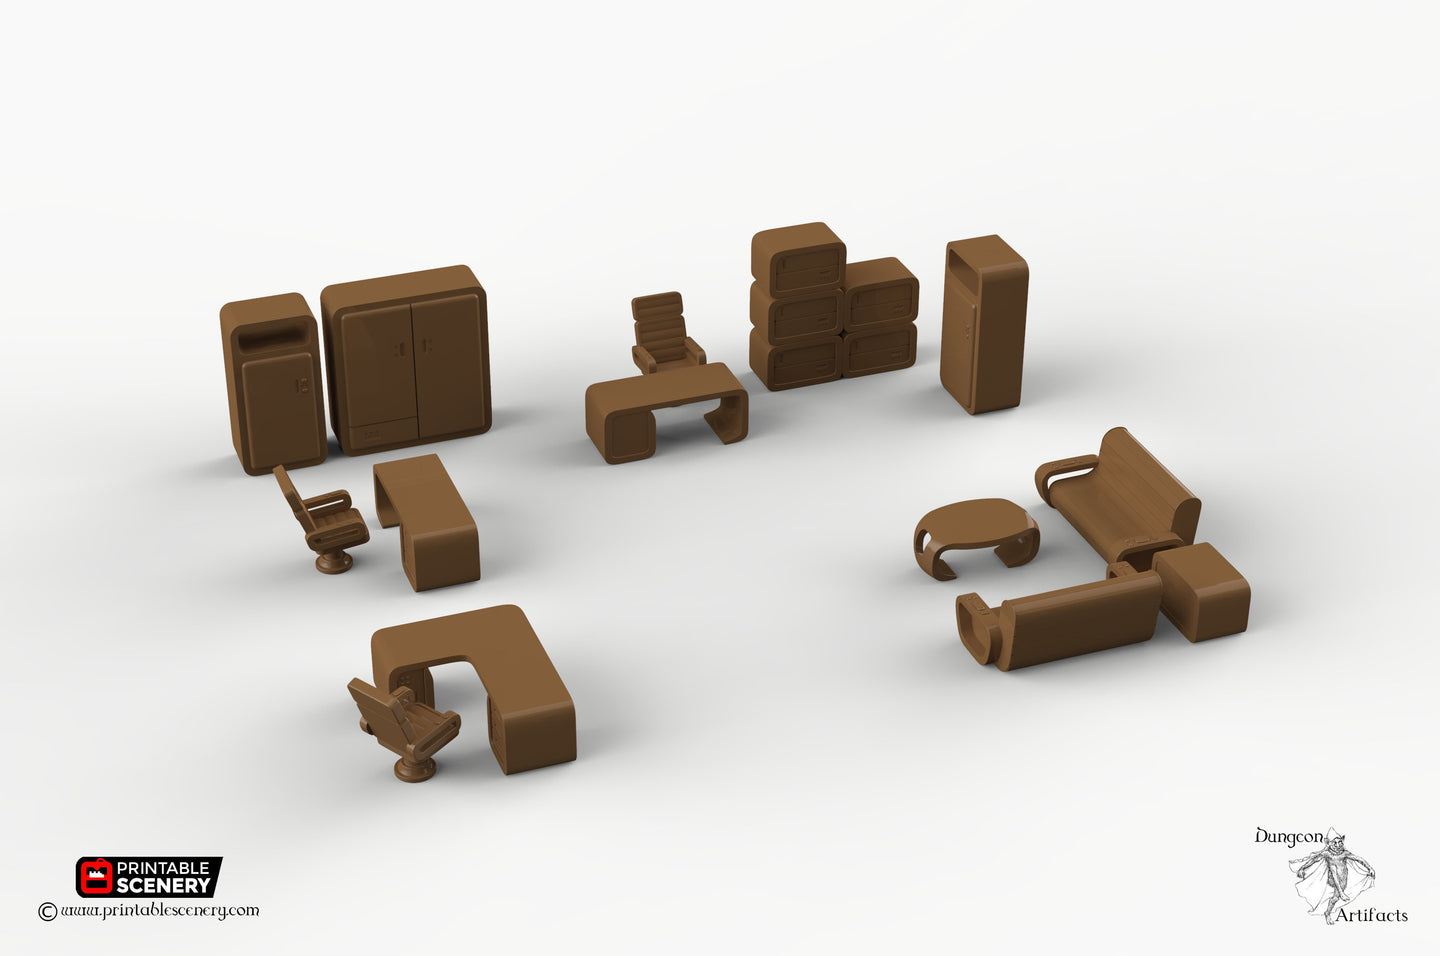 Cyberpunk Office Furniture Set - 28mm 32mm Brave New Worlds Tabletop Scatter Miniatures Terrain D&D, DnD, Pathfinder, Warhammer, 40k